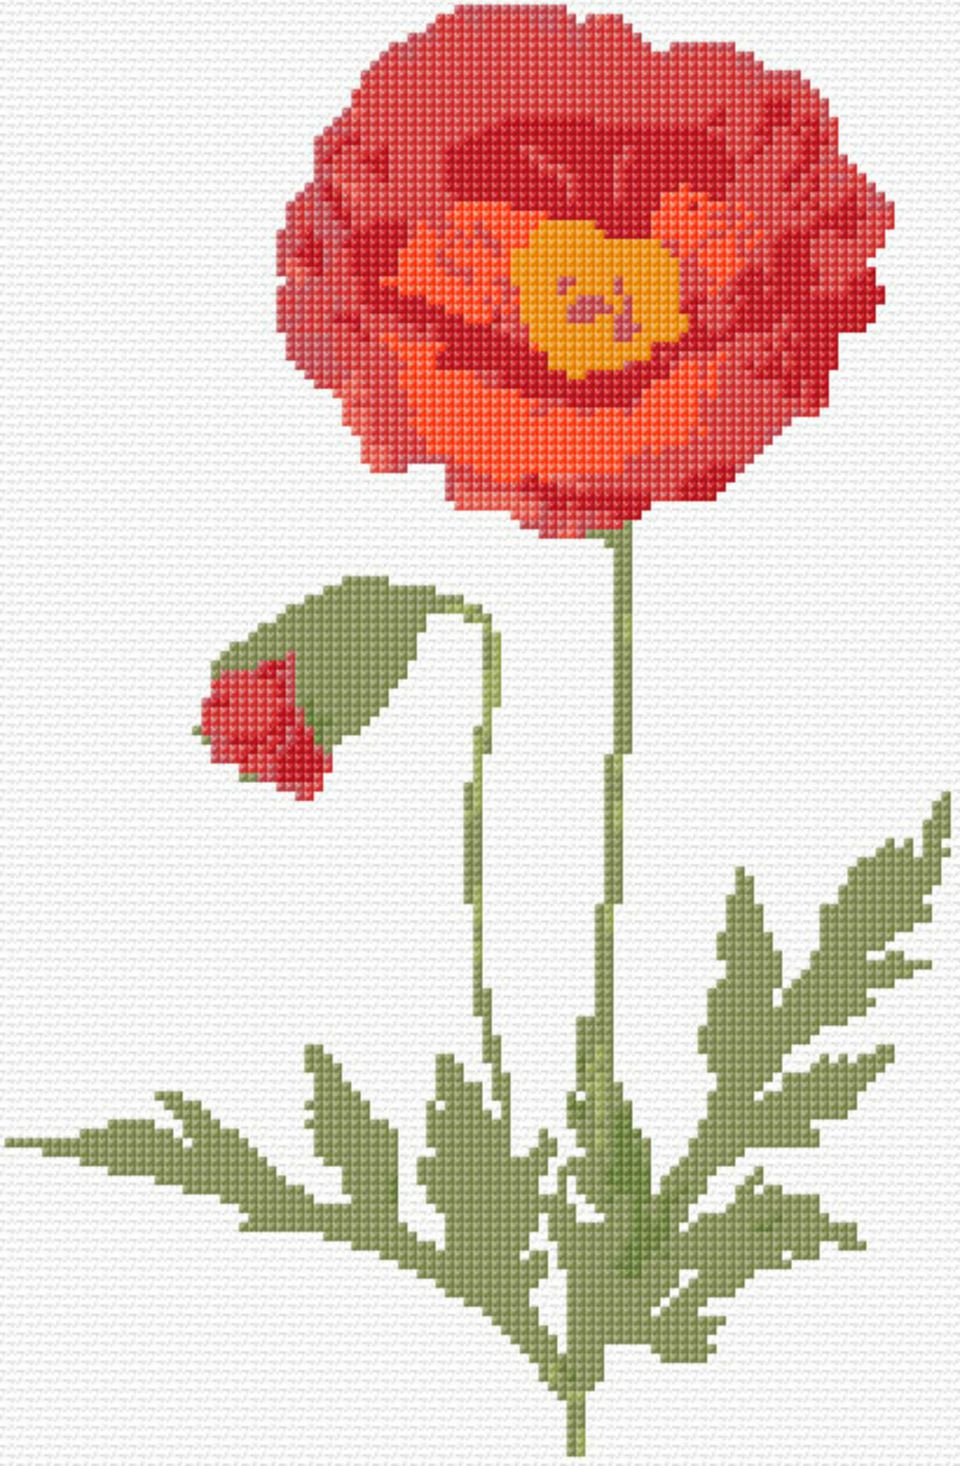 Feeling free cross stitch patterns and samplers